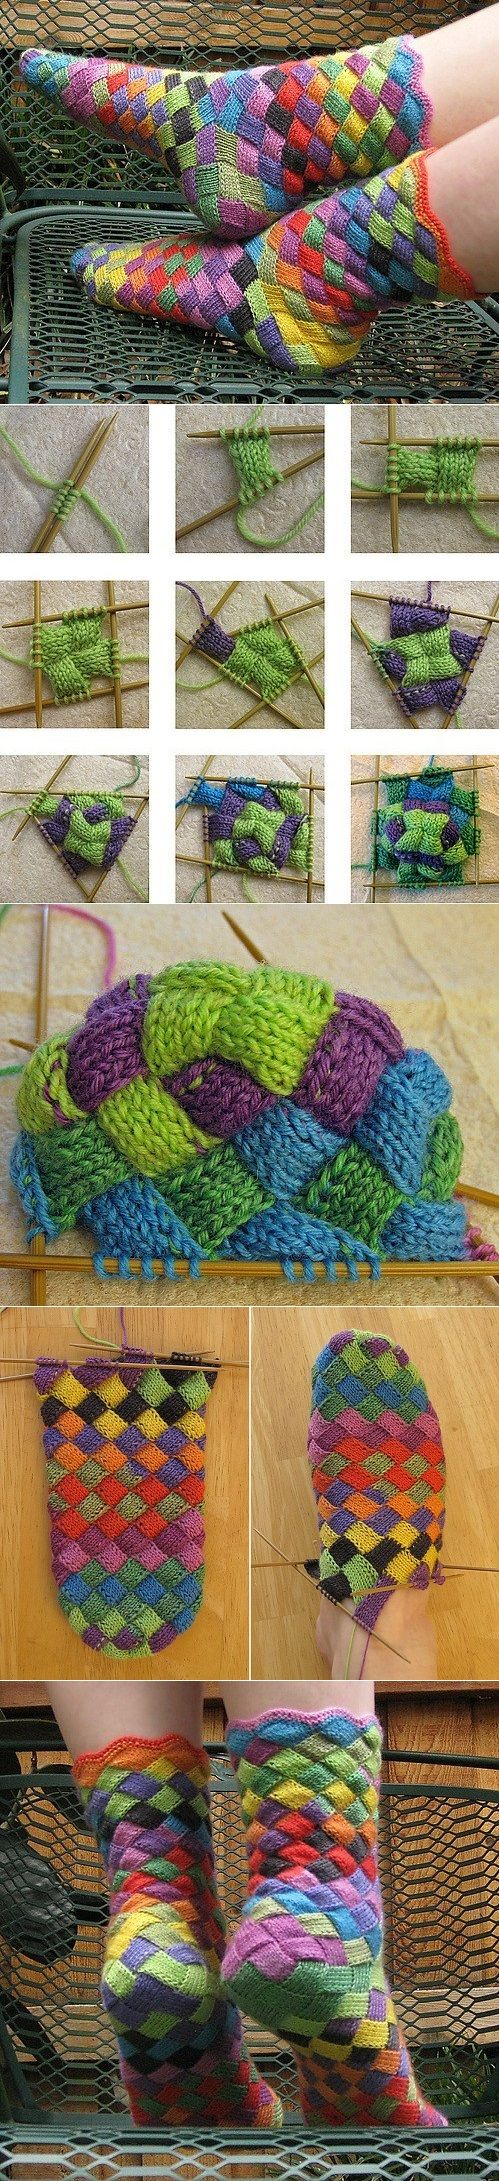 DIY Rainbow Knitted Socks | UsefulDIY.com Follow Us on Facebook ==> http://www.facebook.com/UsefulDiy | !GMO I'd learn to knit just for this. I've never wanted to knit until now, since I knitted a garter stitch scarf 55 years ago. This would be more difficult. lol